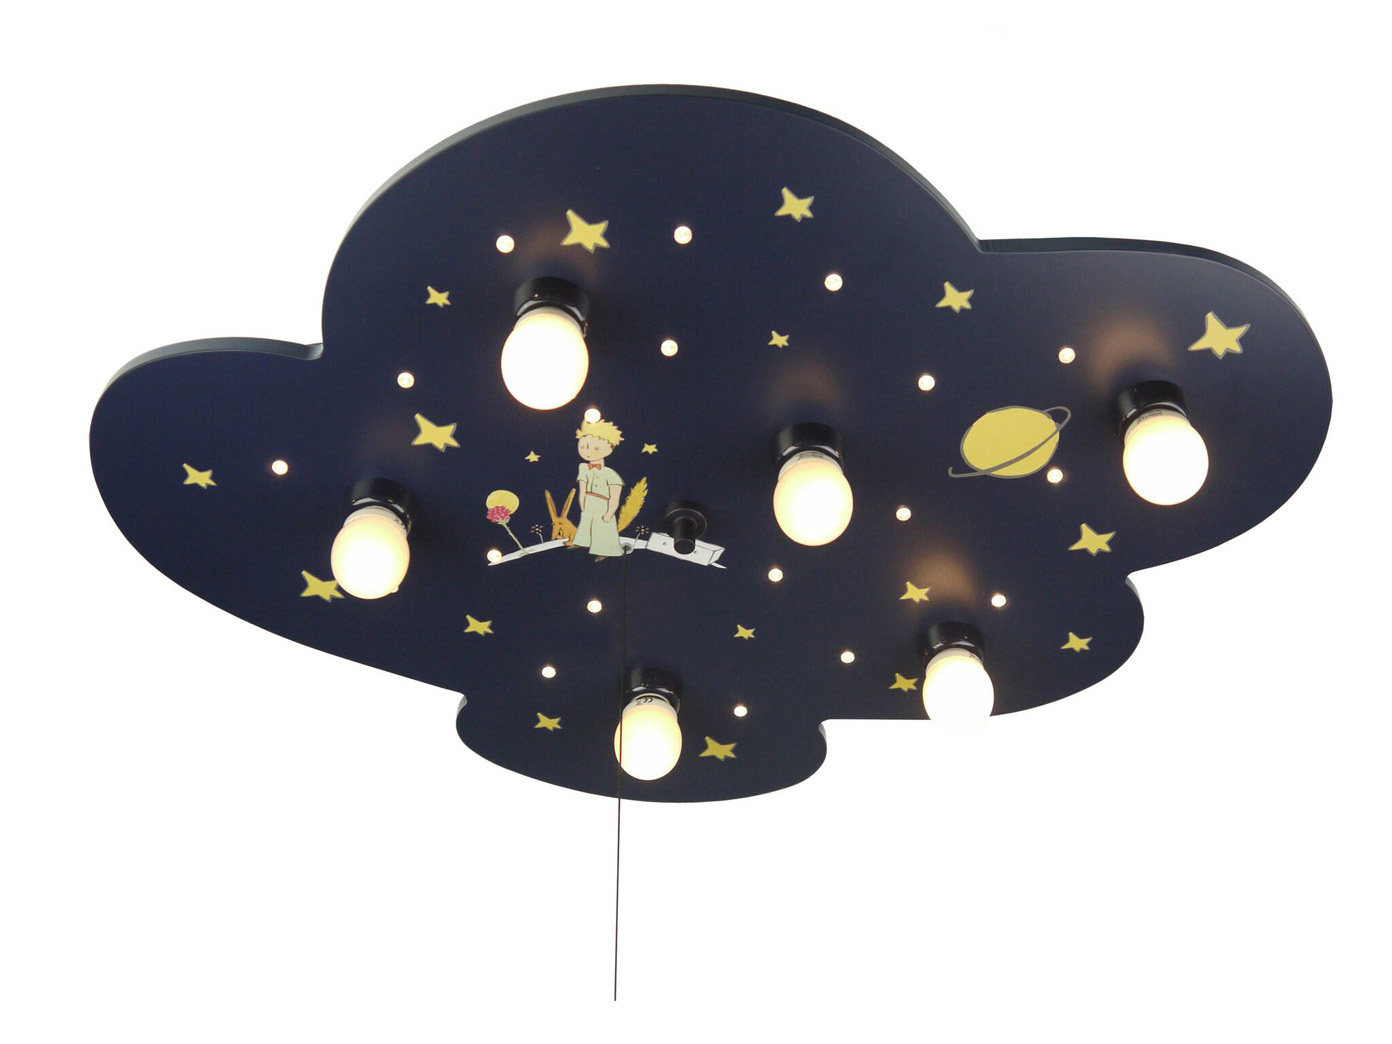 xxl deckenlampe f r kinderzimmer alexa licht an led schlummerlicht wolkenlampe eur 168 99. Black Bedroom Furniture Sets. Home Design Ideas